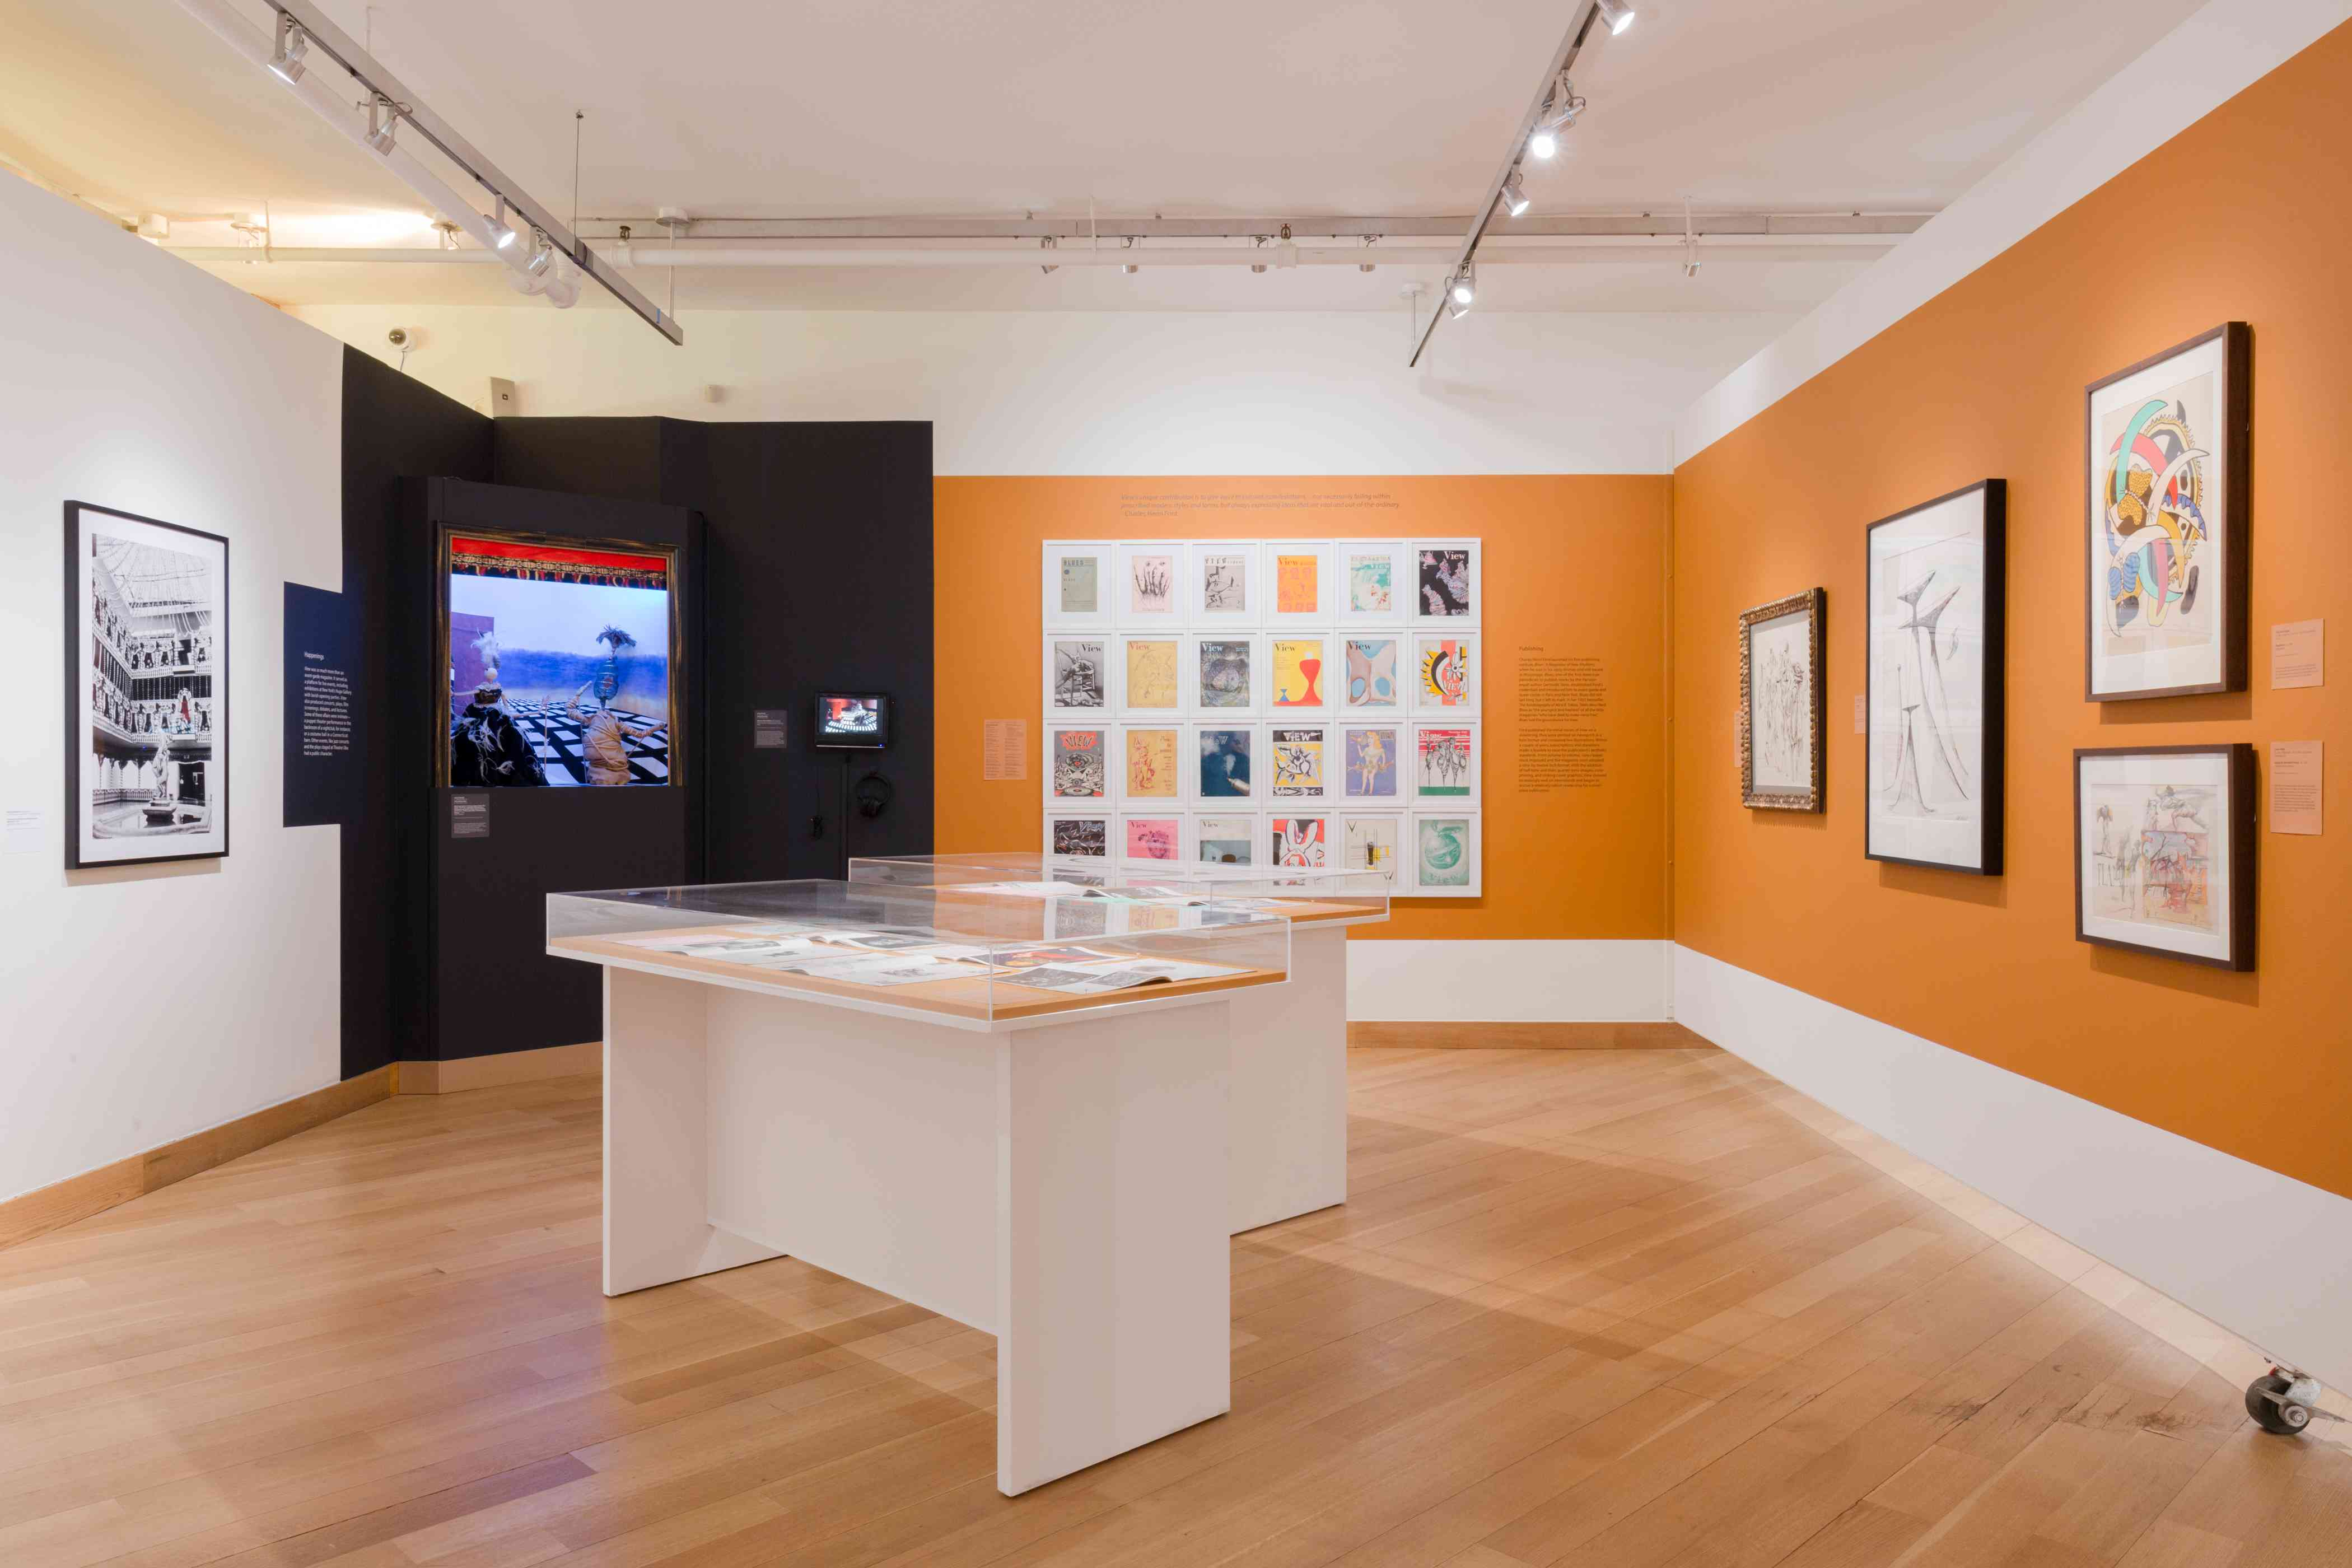 Art gallery with orange walls and display cases in the middle of the room